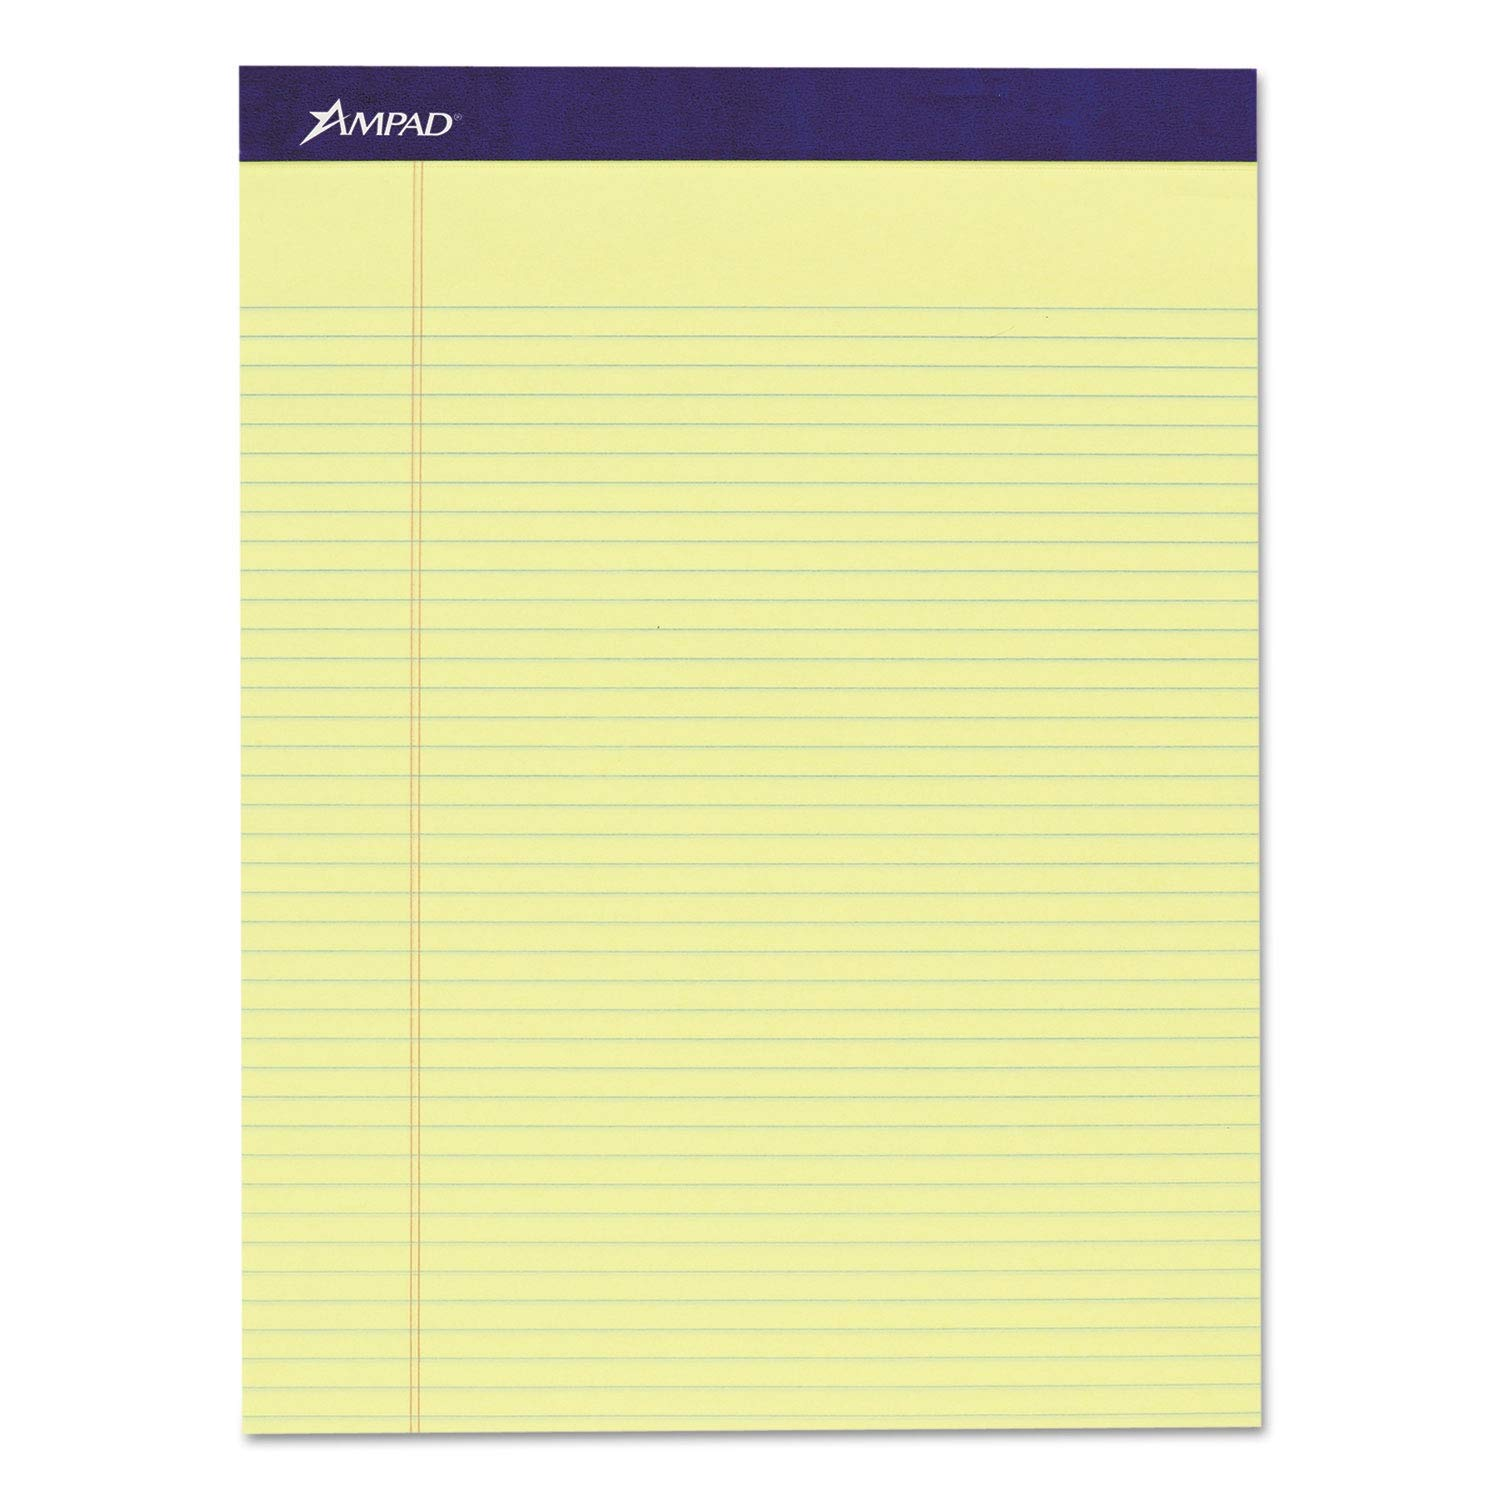 Ampad Mead Legal Ruled Pad, 8 1/2 x 11, Canary, 50 Sheets, 4 Pads/Pack - 20215 (Pack of 2)